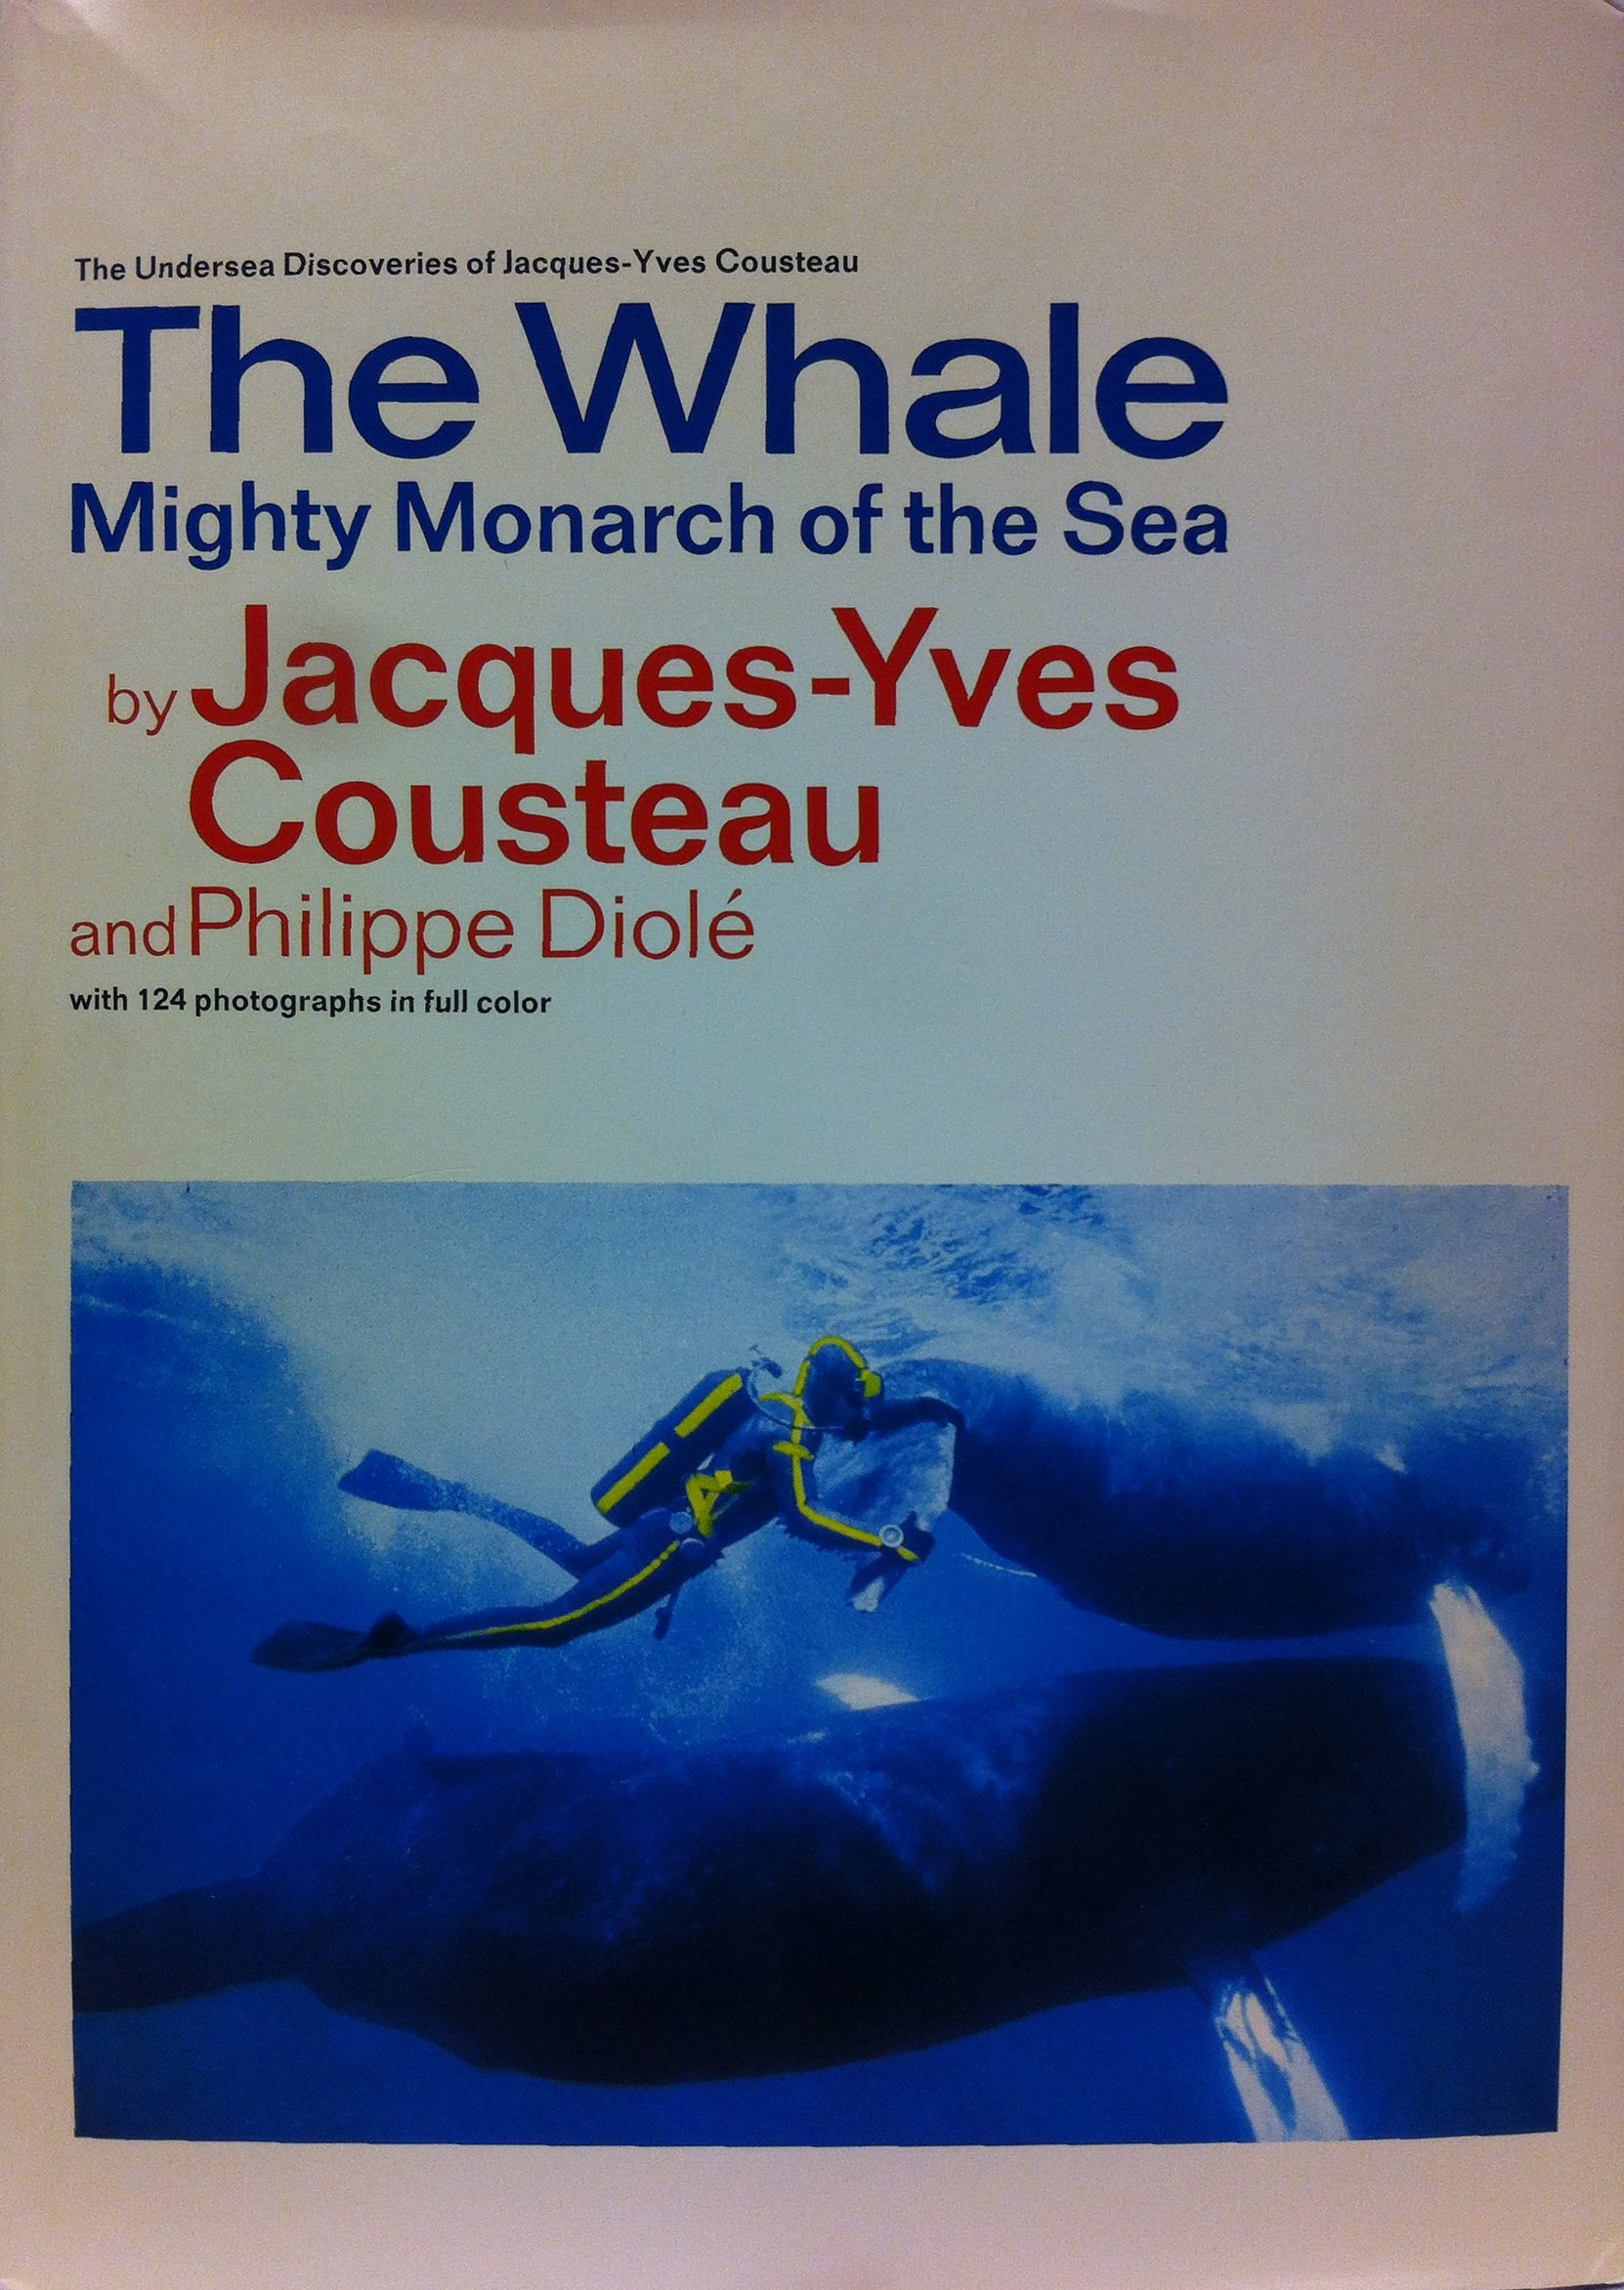 Jacques-Yves Cousteau: so comes sea glory 47